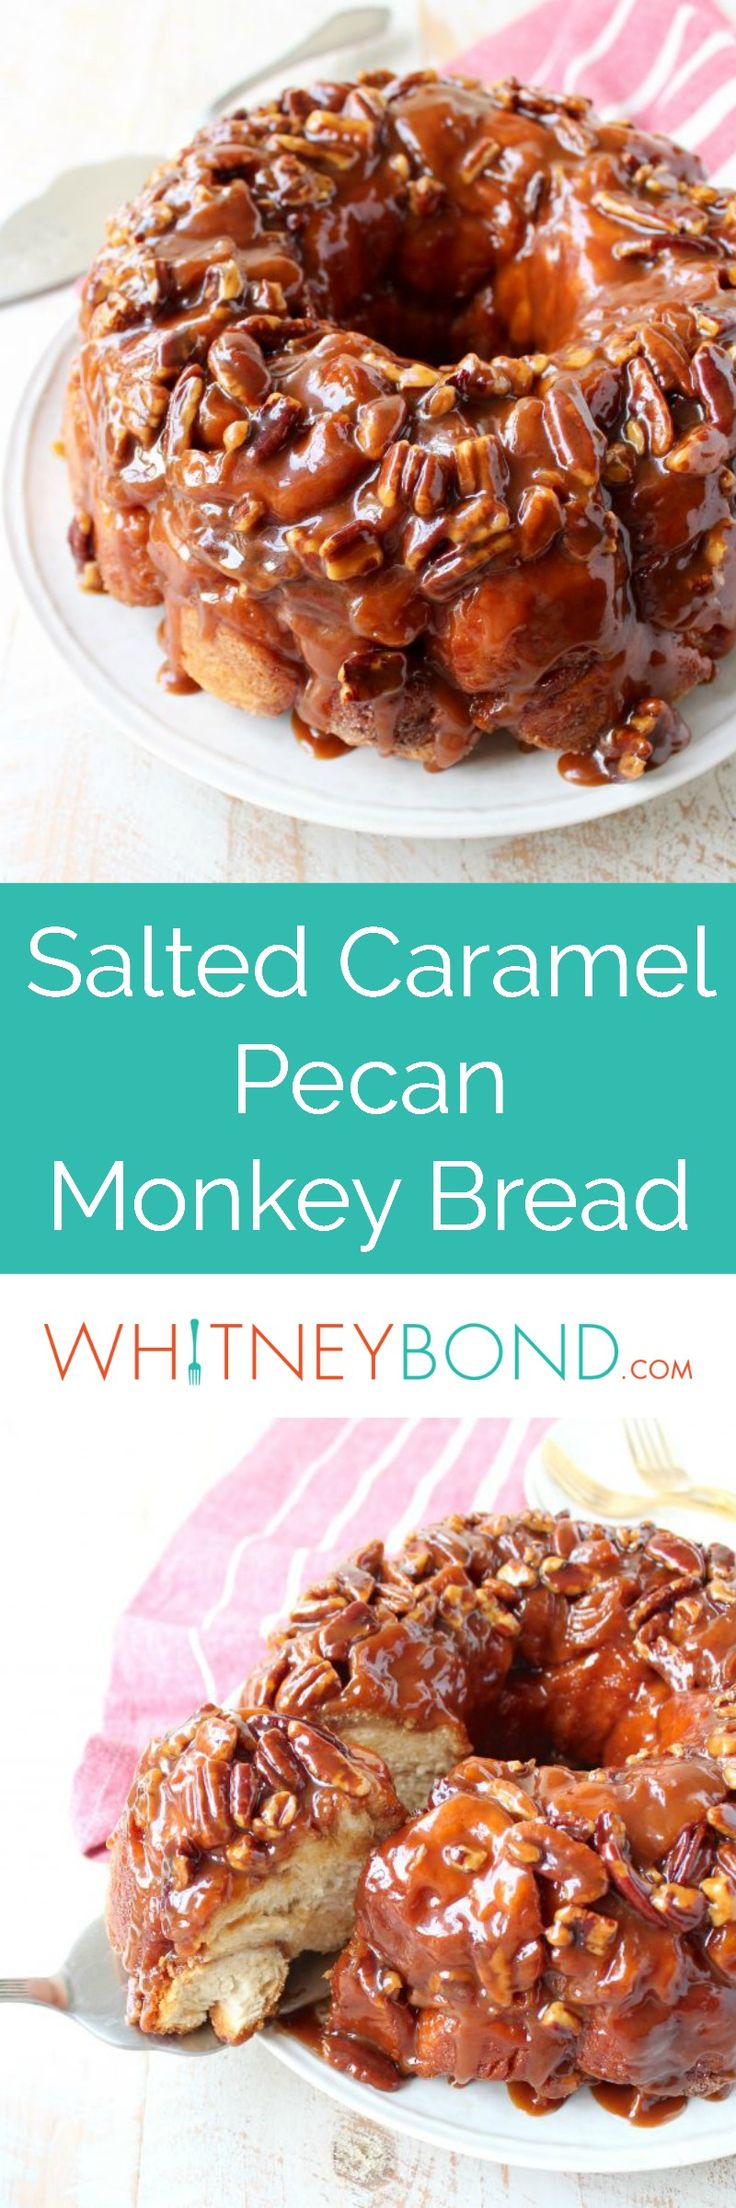 Salted caramel and pecans are added to this easy Monkey Bread Recipe that makes the most decadent, melt-in-your-mouth breakfast or brunch! Serve this delicious recipe with a @worldmarket Eat Drink and Be Merry Cake Server!